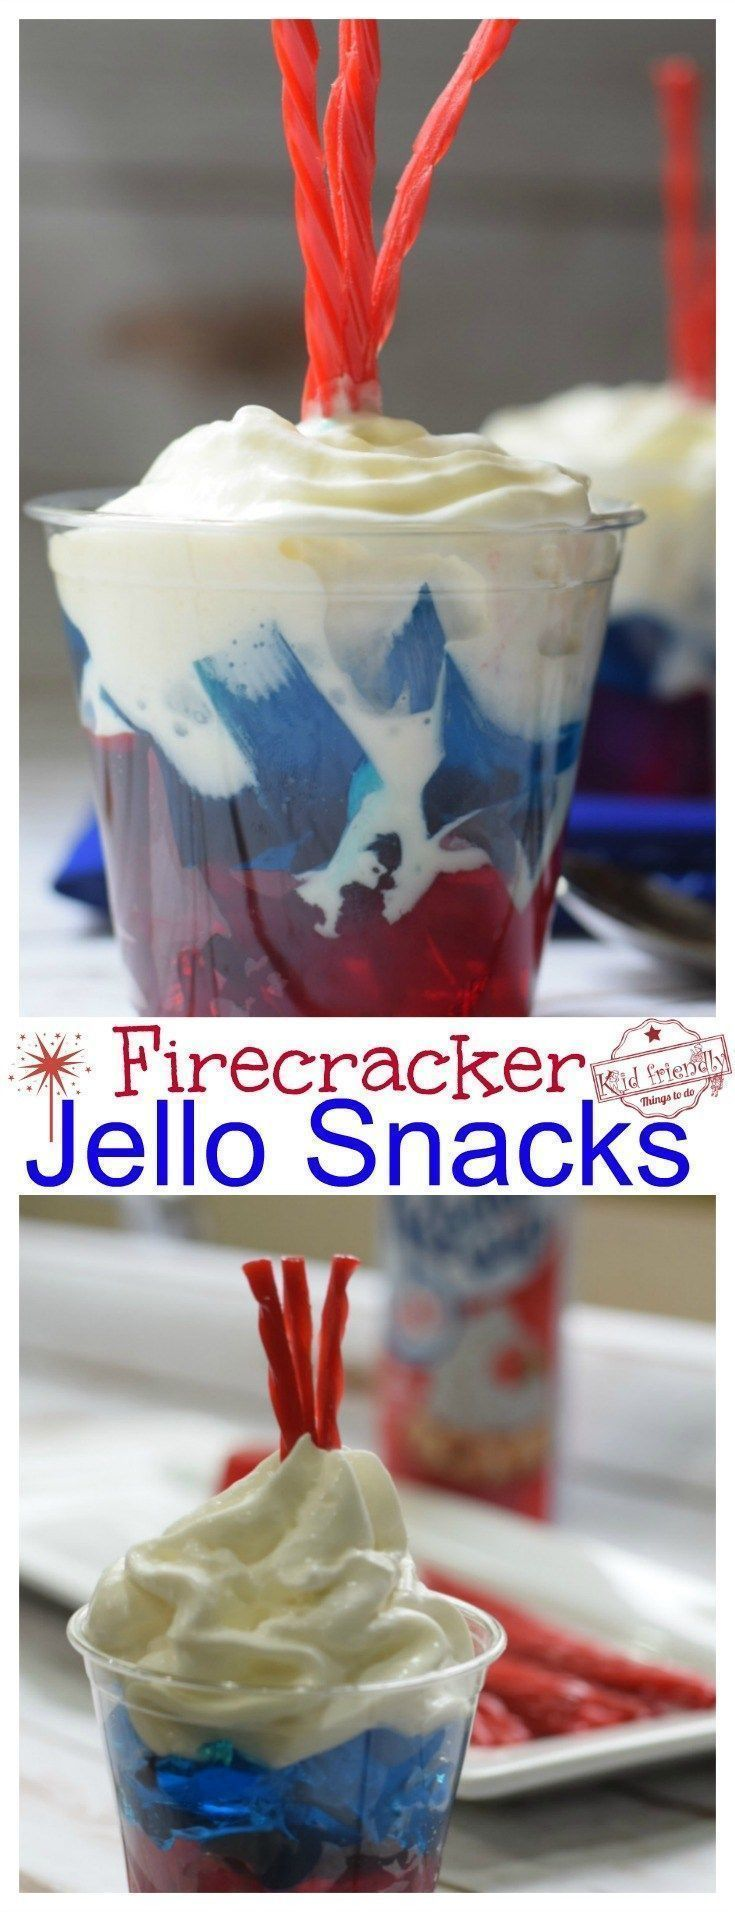 Firecracker Jello Snack dessert. Easy and patriotic fun food treats! http://www.kidfriendlythingstodo.com Memorial Day, Labor Day, Fourth of July